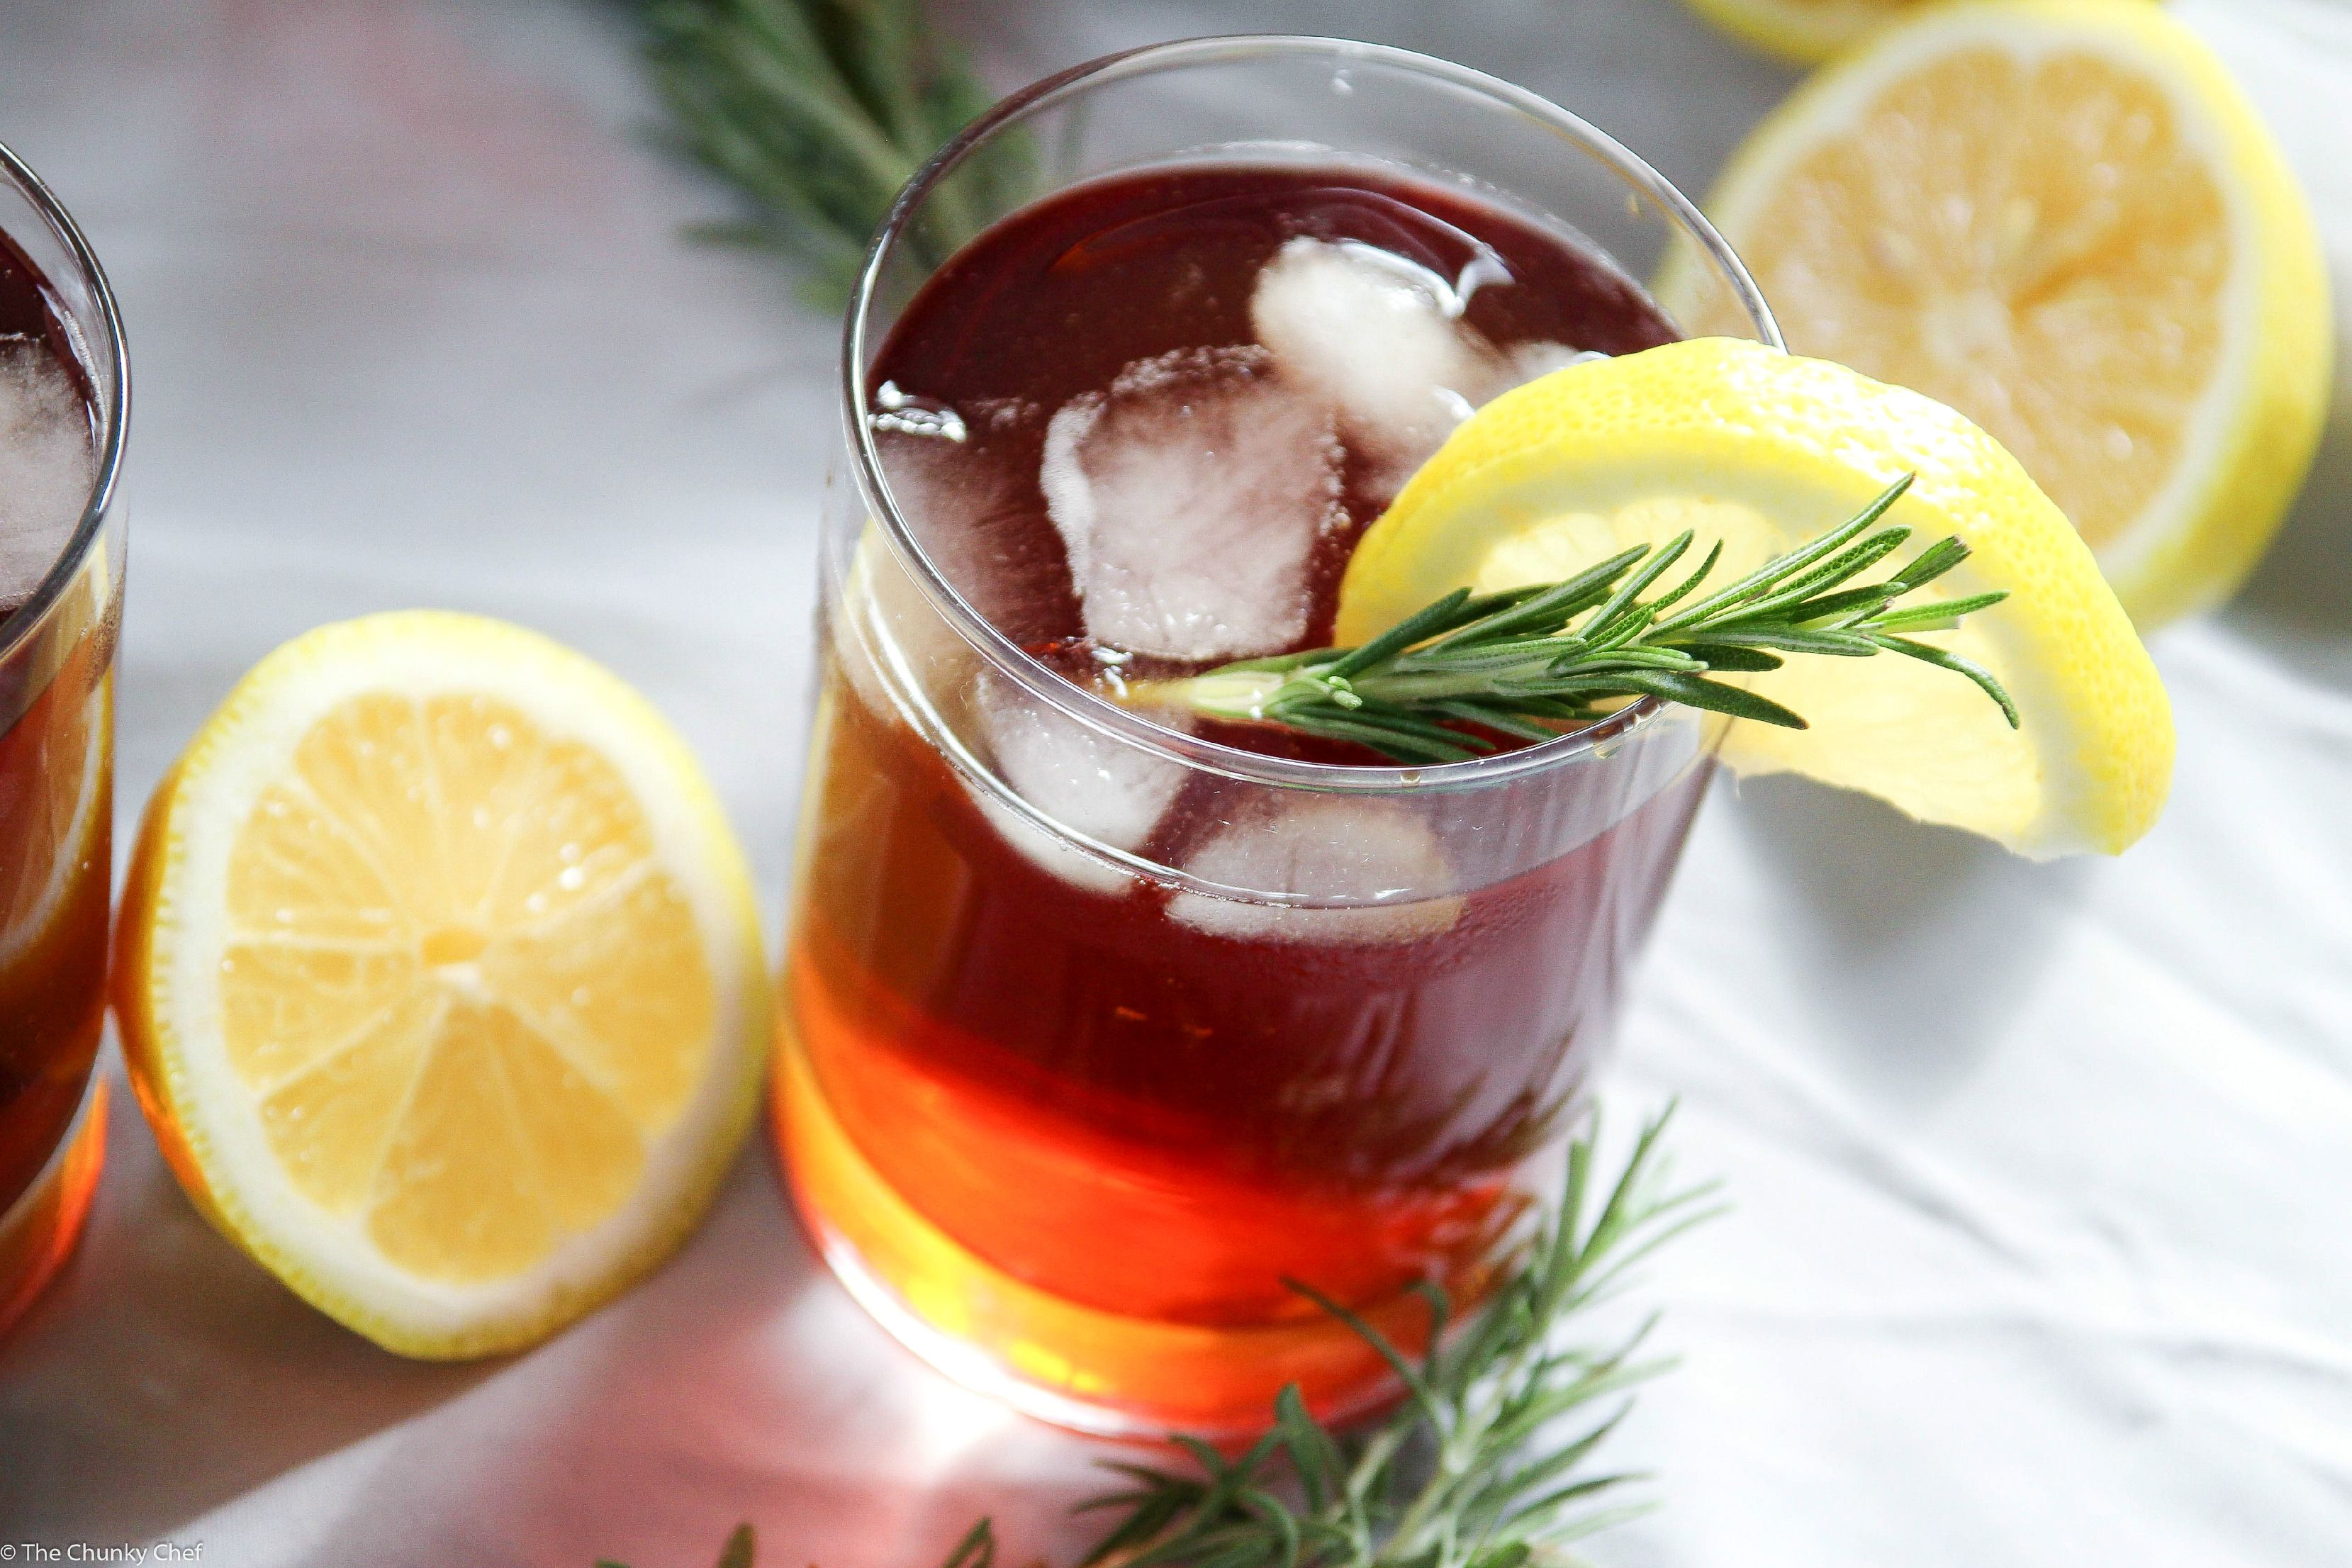 The Classic Sweet Iced Tea Gets A Refreshing Twist From The Addition Of A Lemon And Rosemary Simple S Homemade Caesar Salad Dressing Rosemary Simple Syrup Food